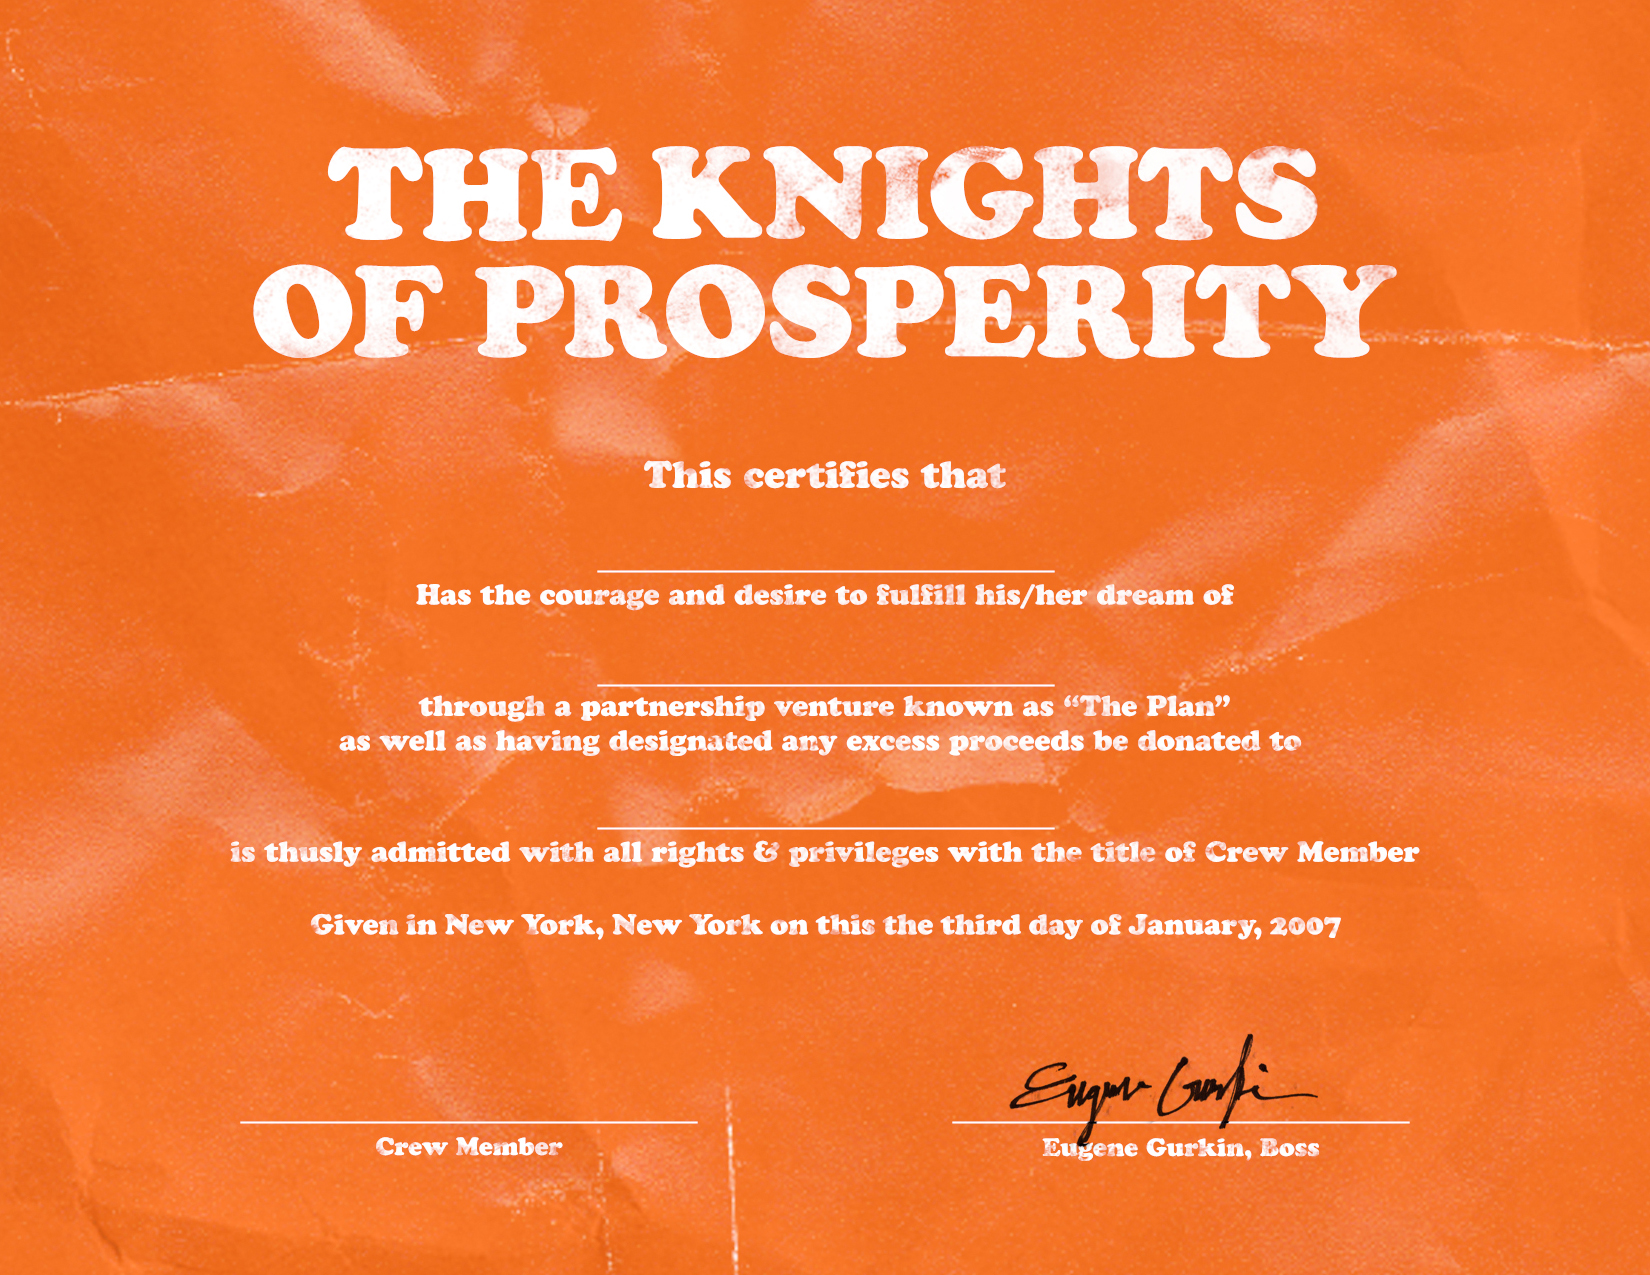 Knights_of_Prosperity_Certificate_Page_1_Image_0001